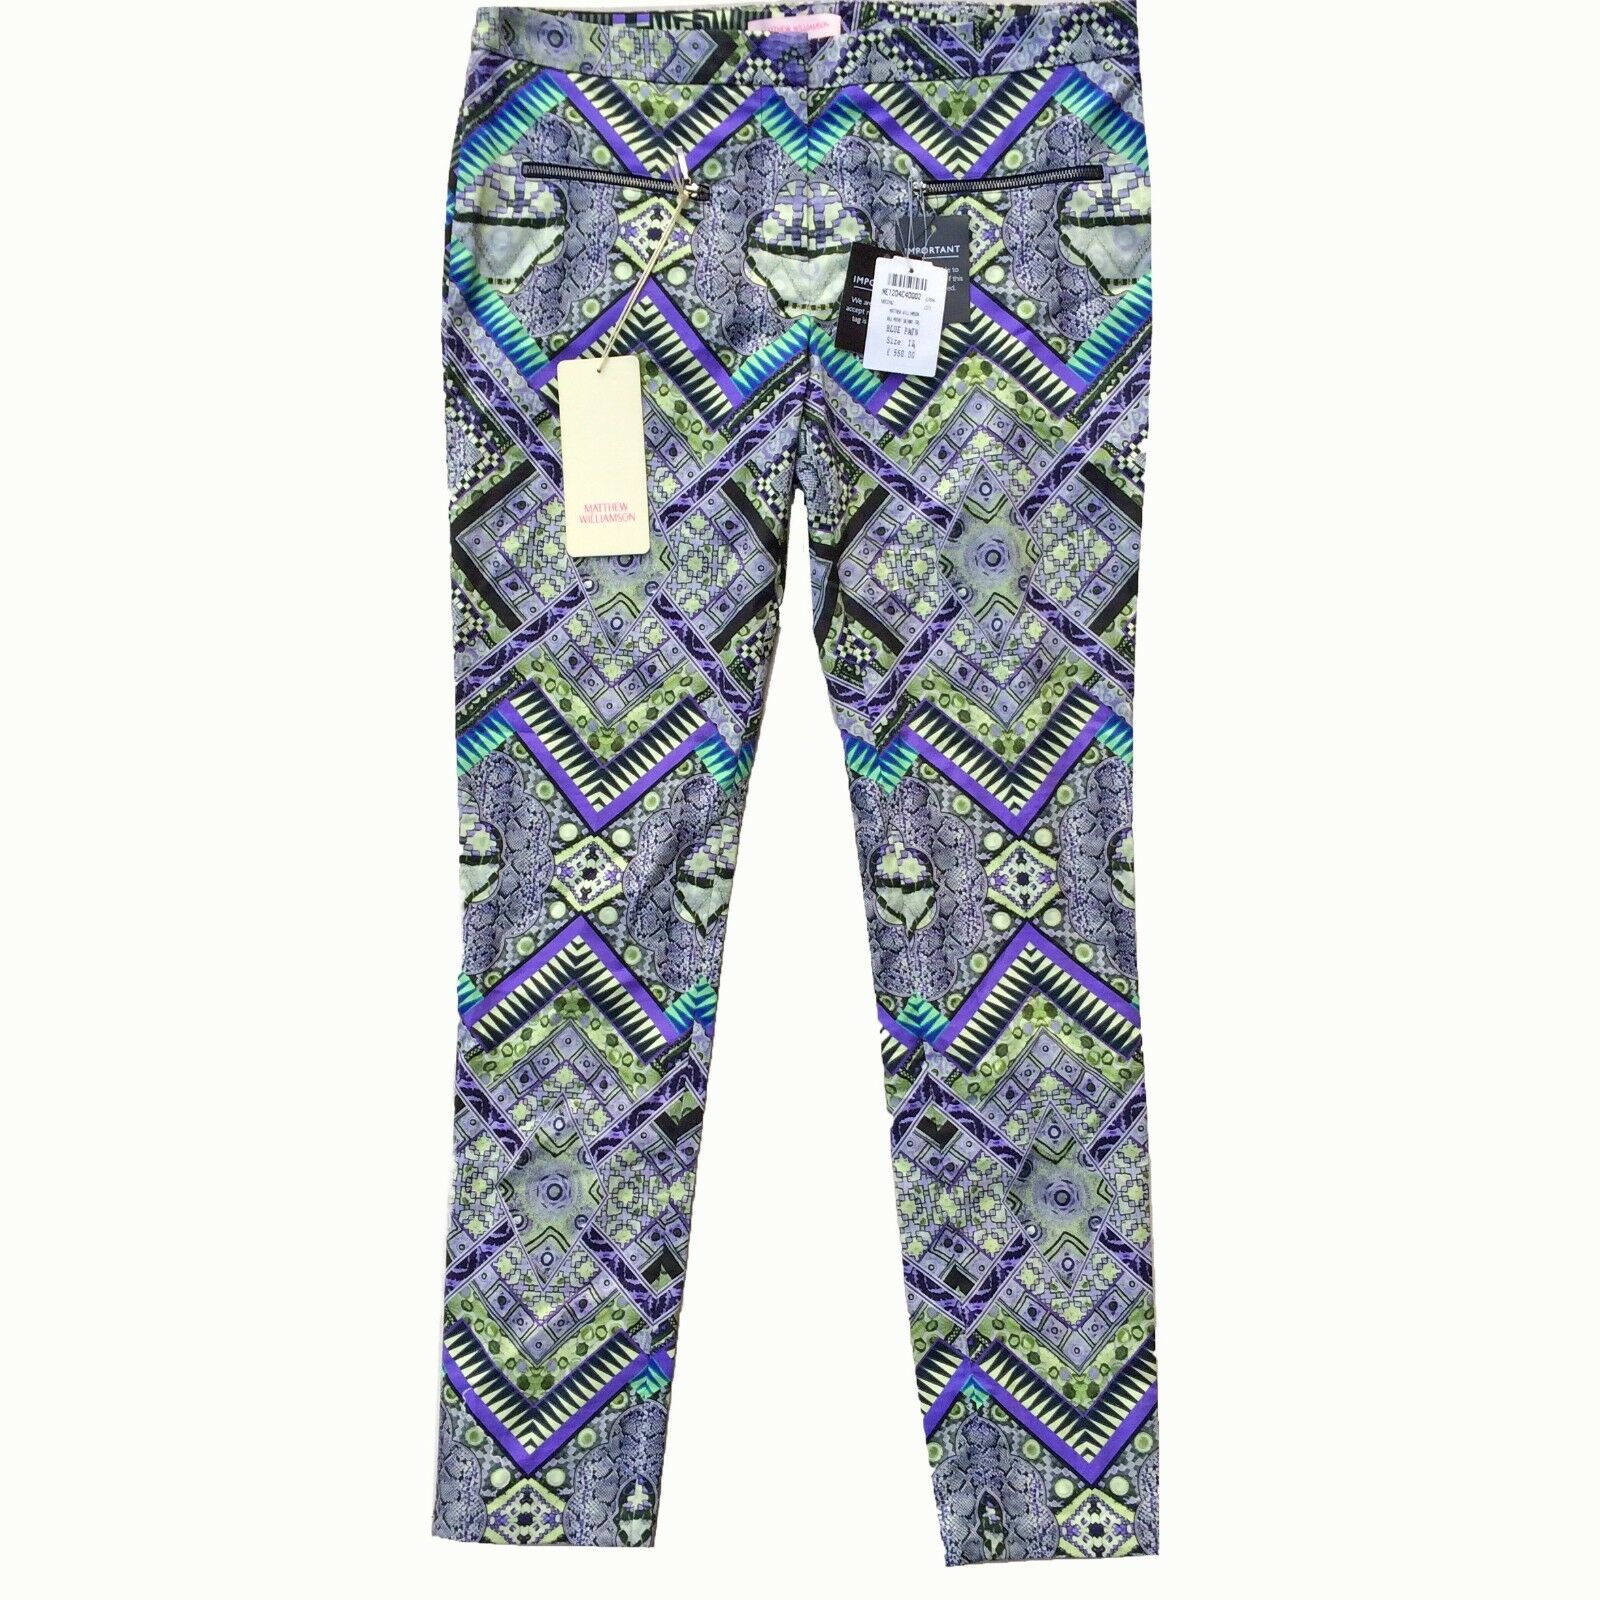 Matthew Williamson Mainline Raj Print Skinny Trousers Size 12